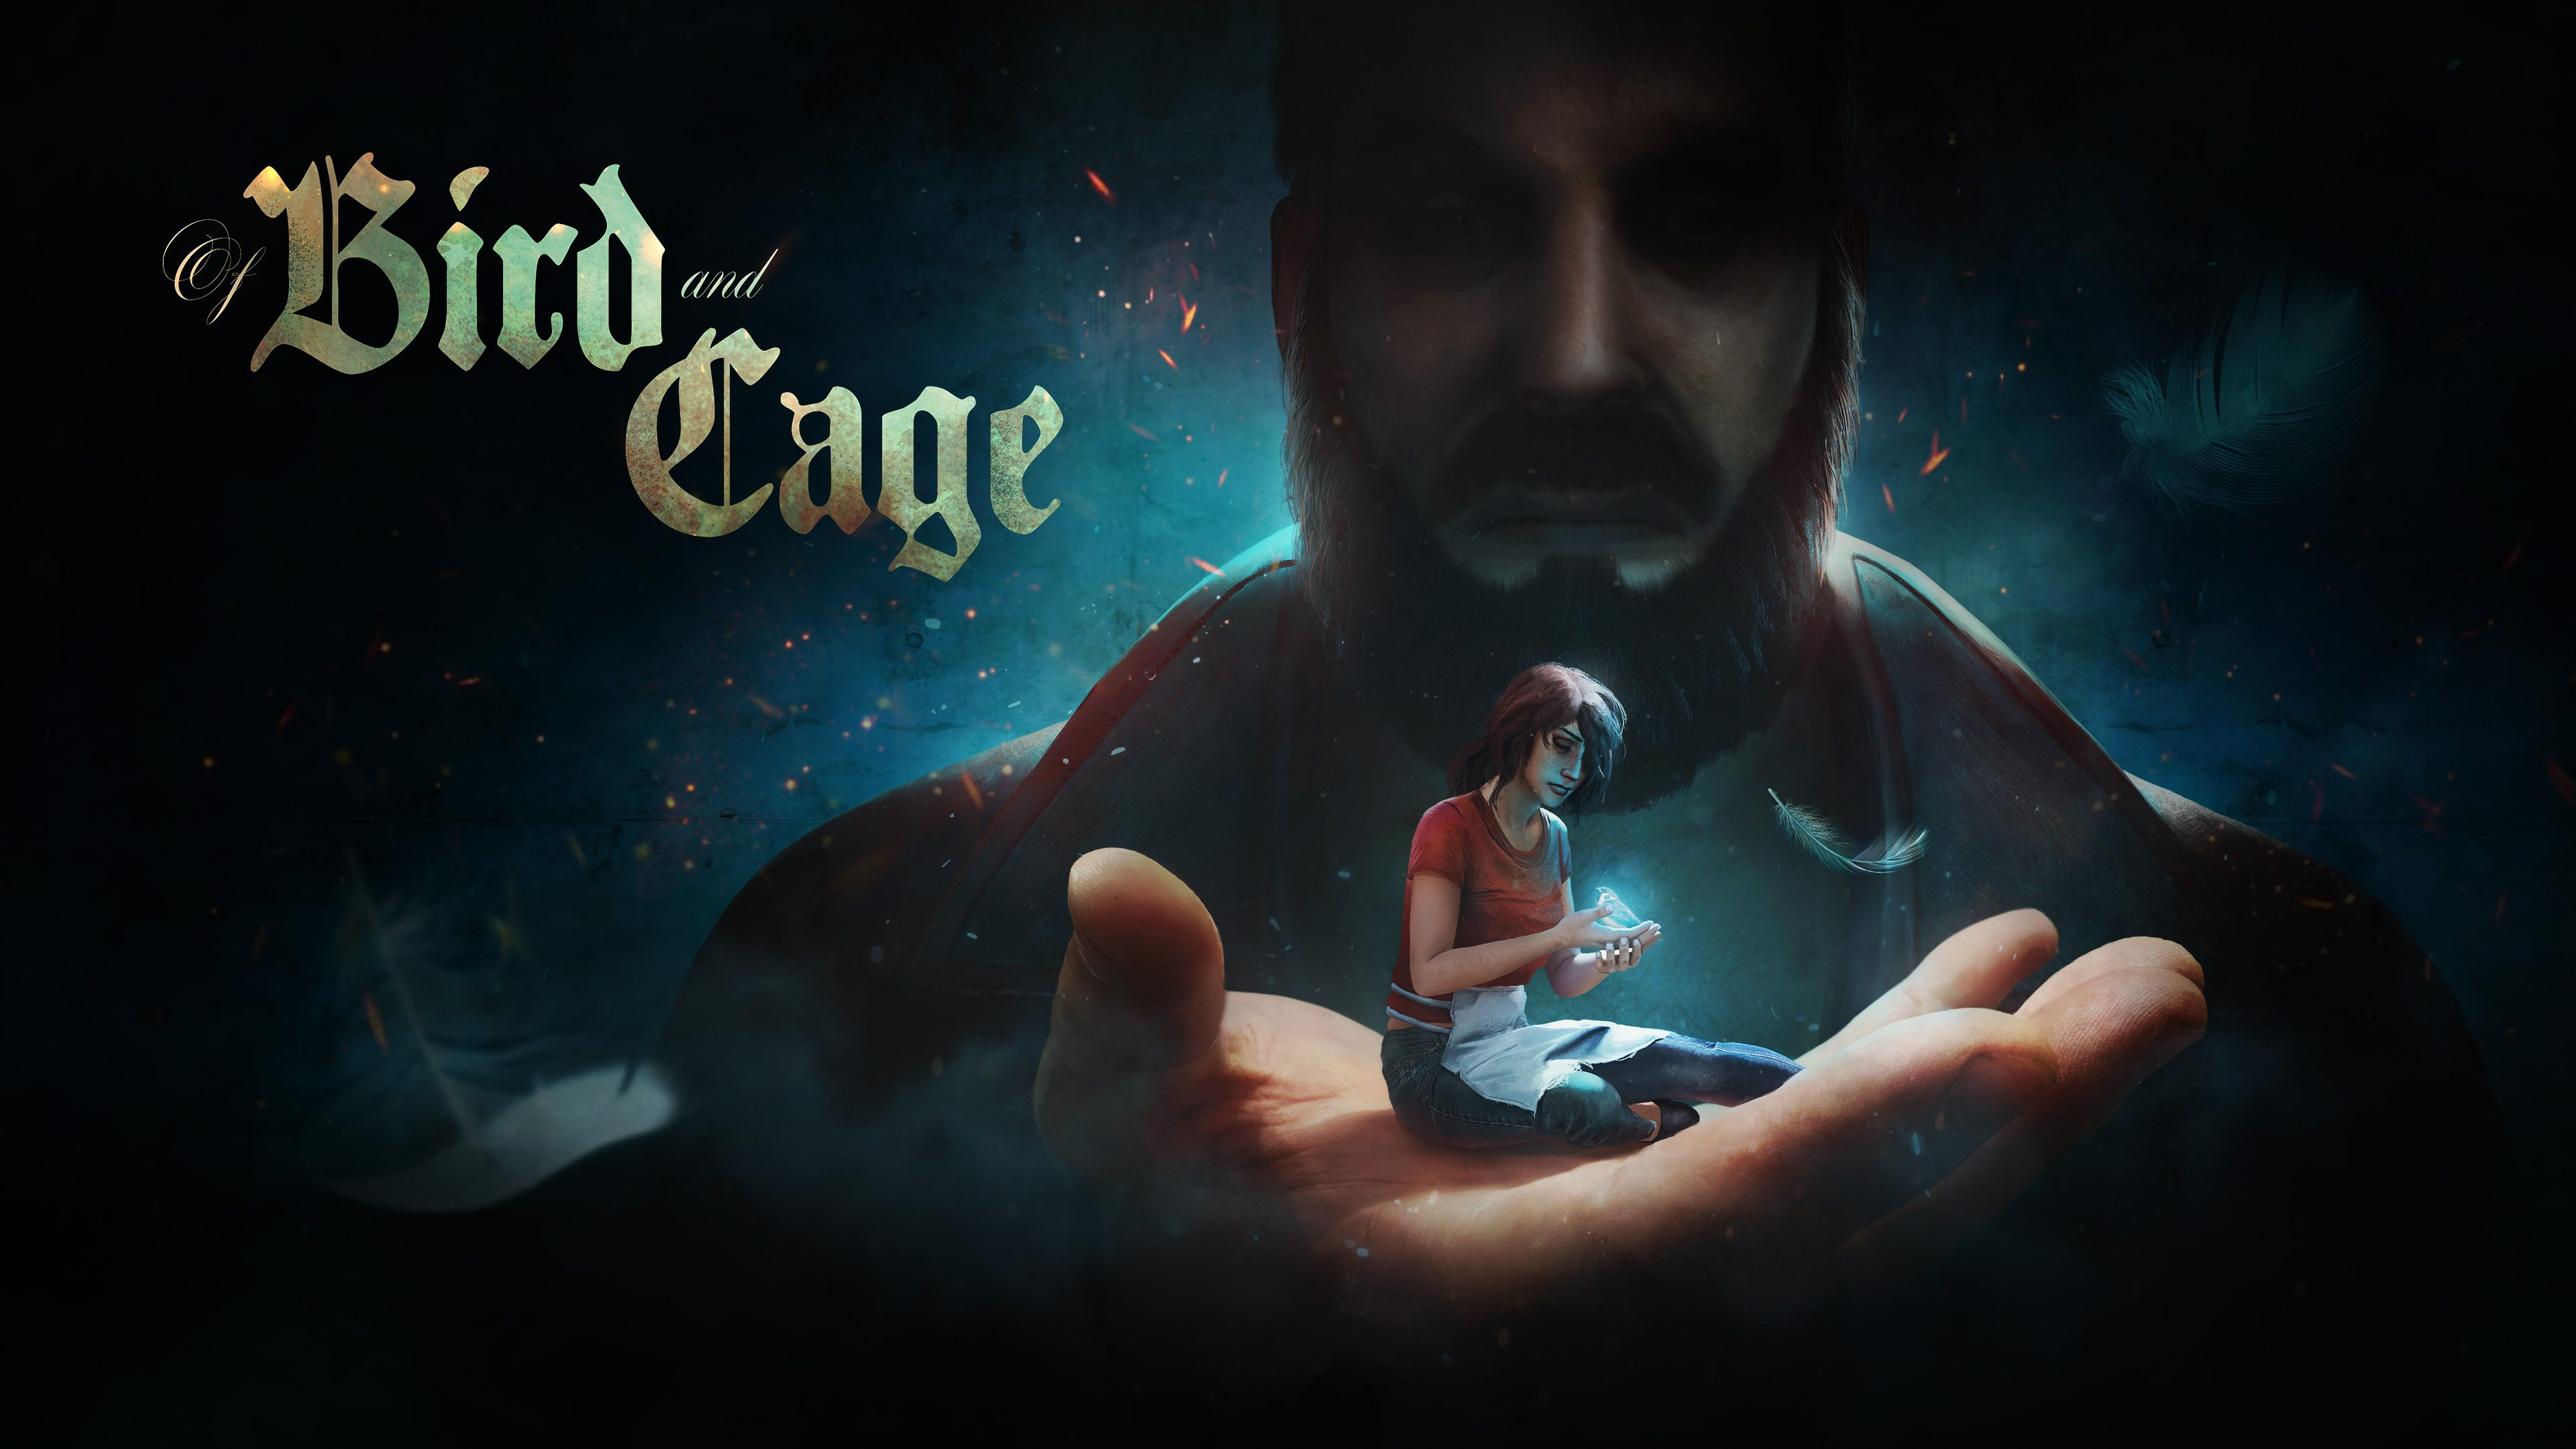 Of Bird and Cage Key Art